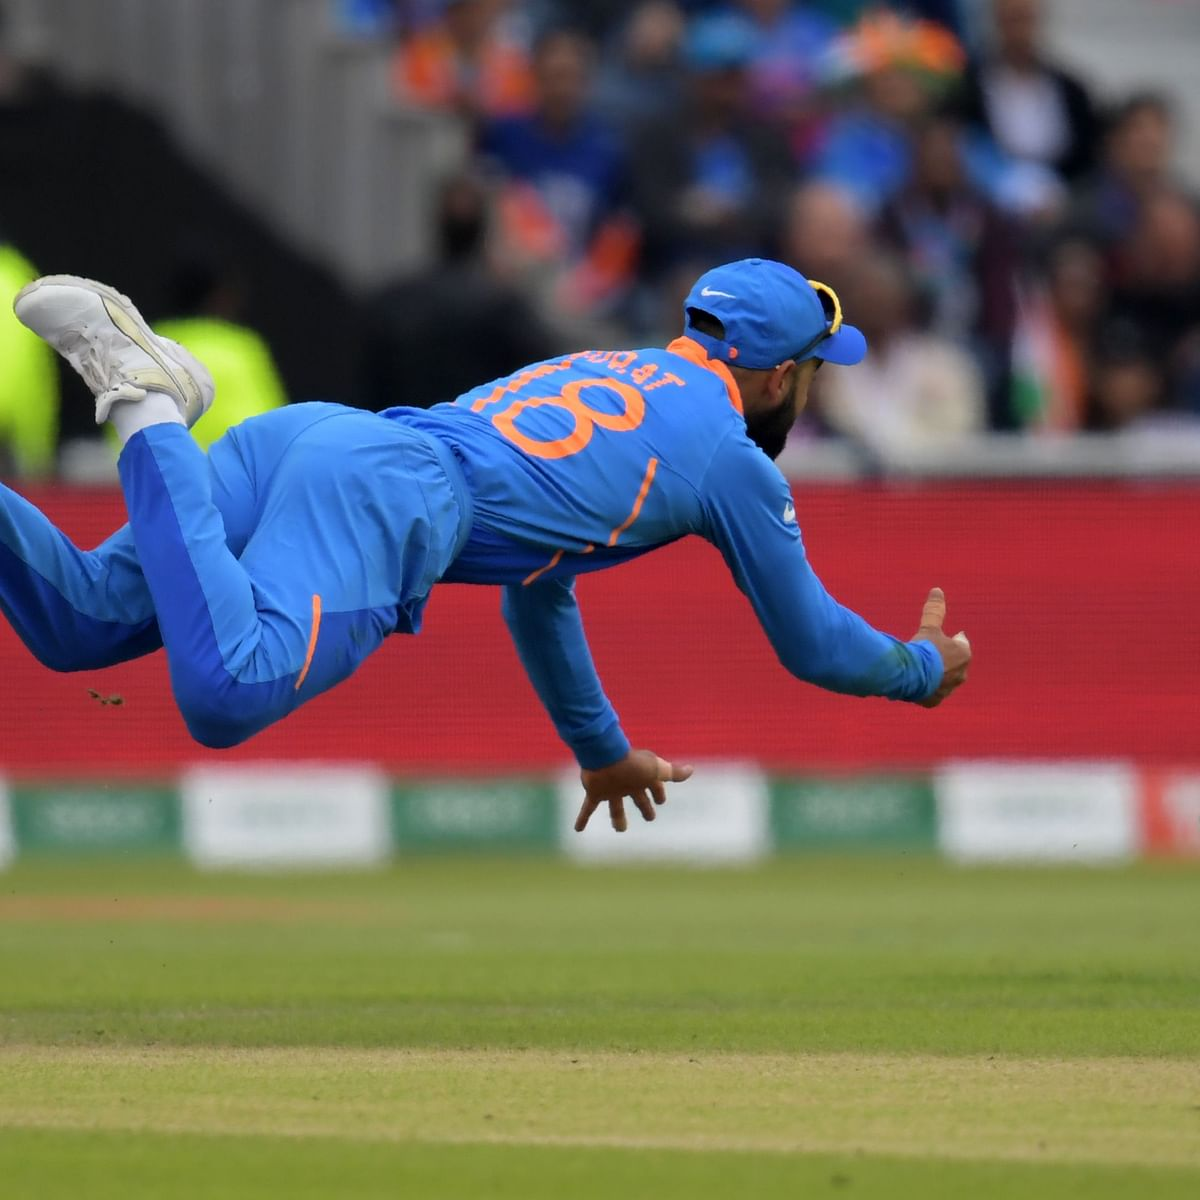 World Cup 2019: Ex-cricketers lash out at 'awful' Old Trafford wicket